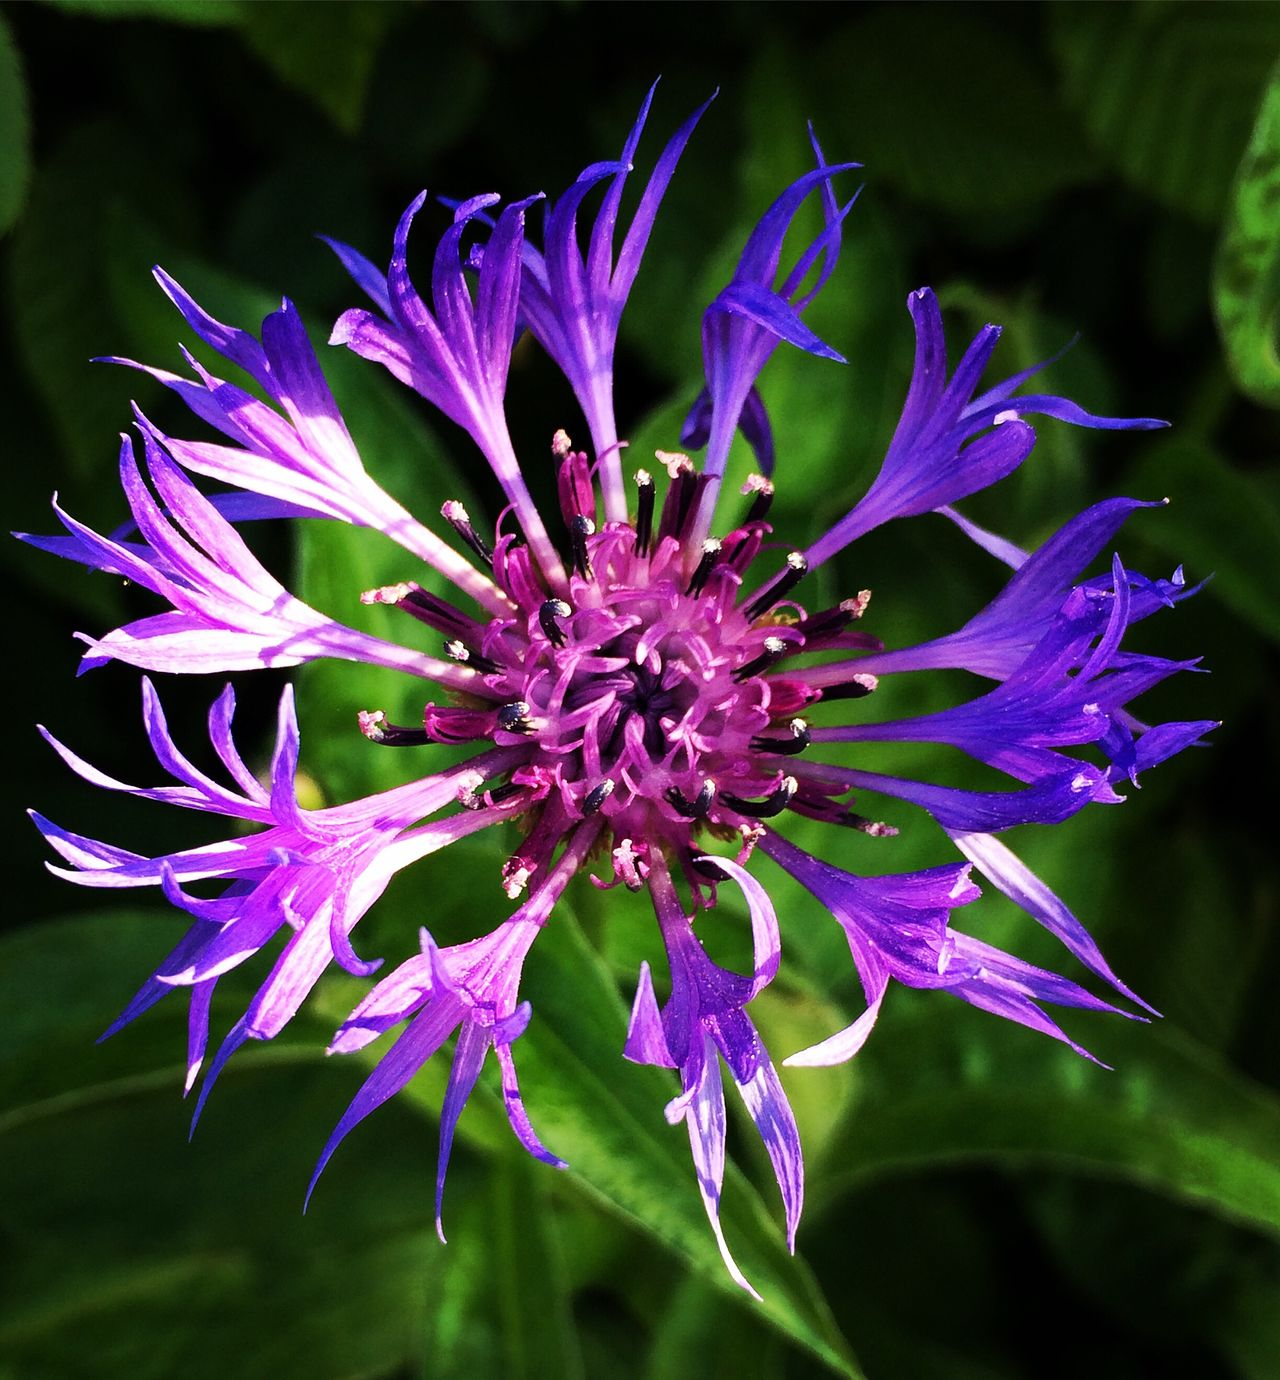 Flower Fragility Growth Freshness Petal Beauty In Nature Nature Flower Head Plant Focus On Foreground Close-up Day No People Blooming Outdoors Kornblume Cornflower